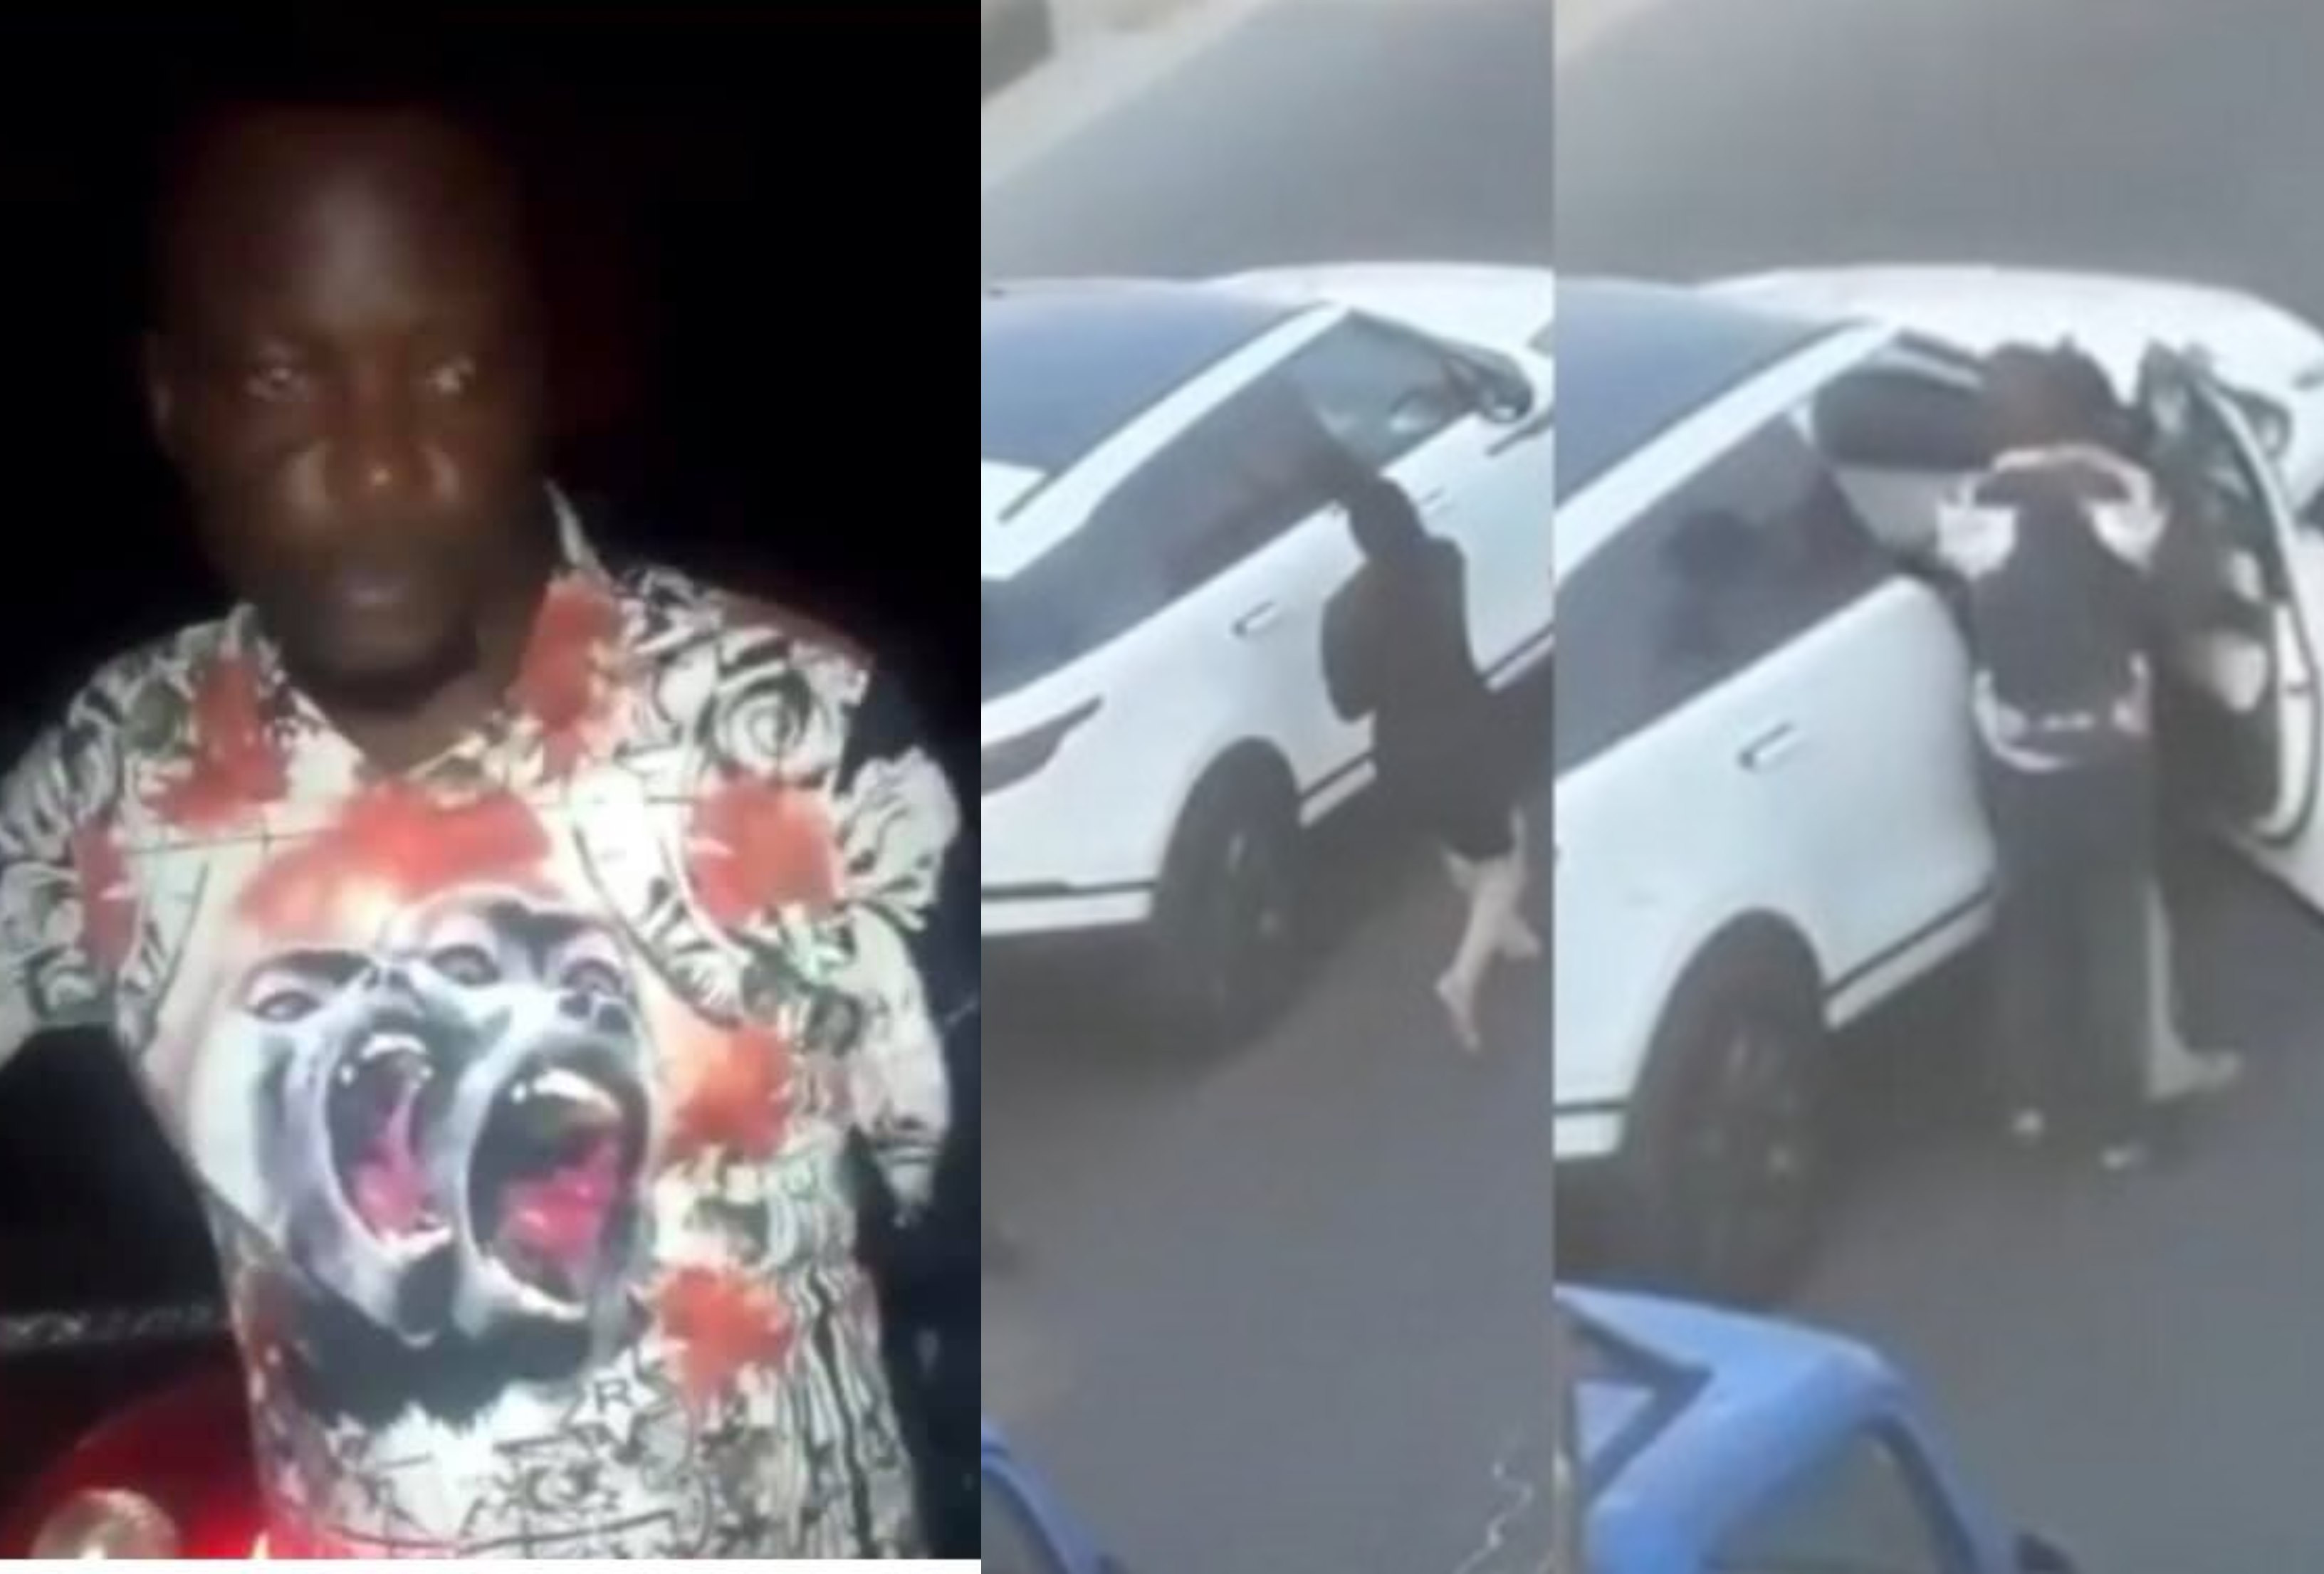 Bobrisky shares video of the man that assaulted him after bashing his car. Reveals what really happened (watch video)